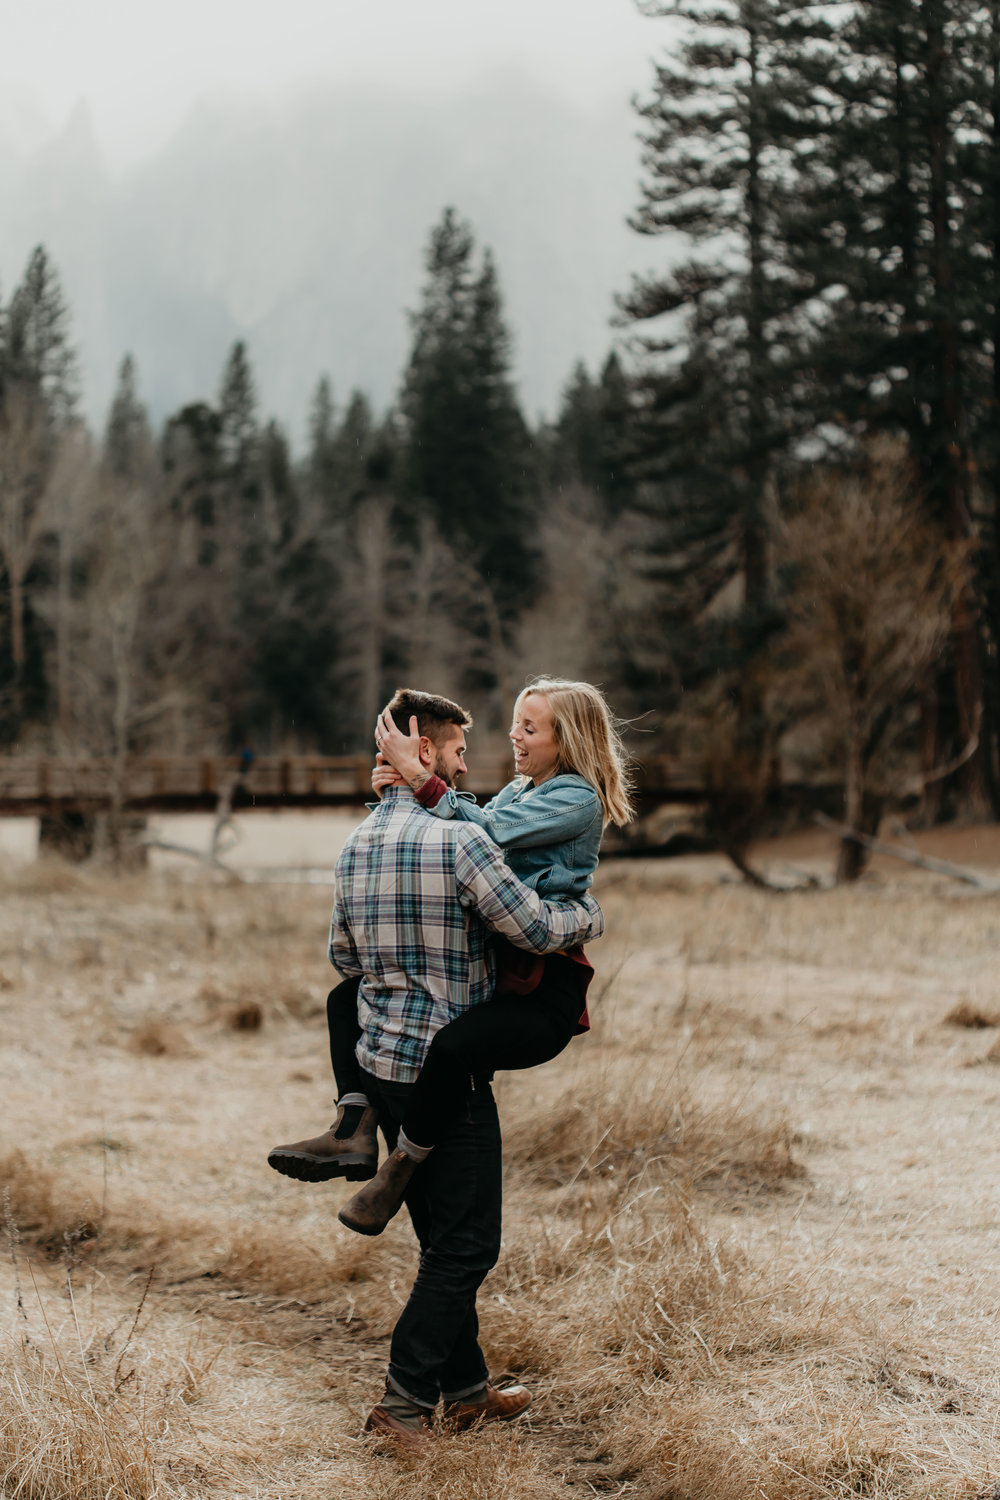 nicole-daacke-photography-yosemite-national-park-engagement-session-yosemite-valley-adventure-session-california-71.jpg